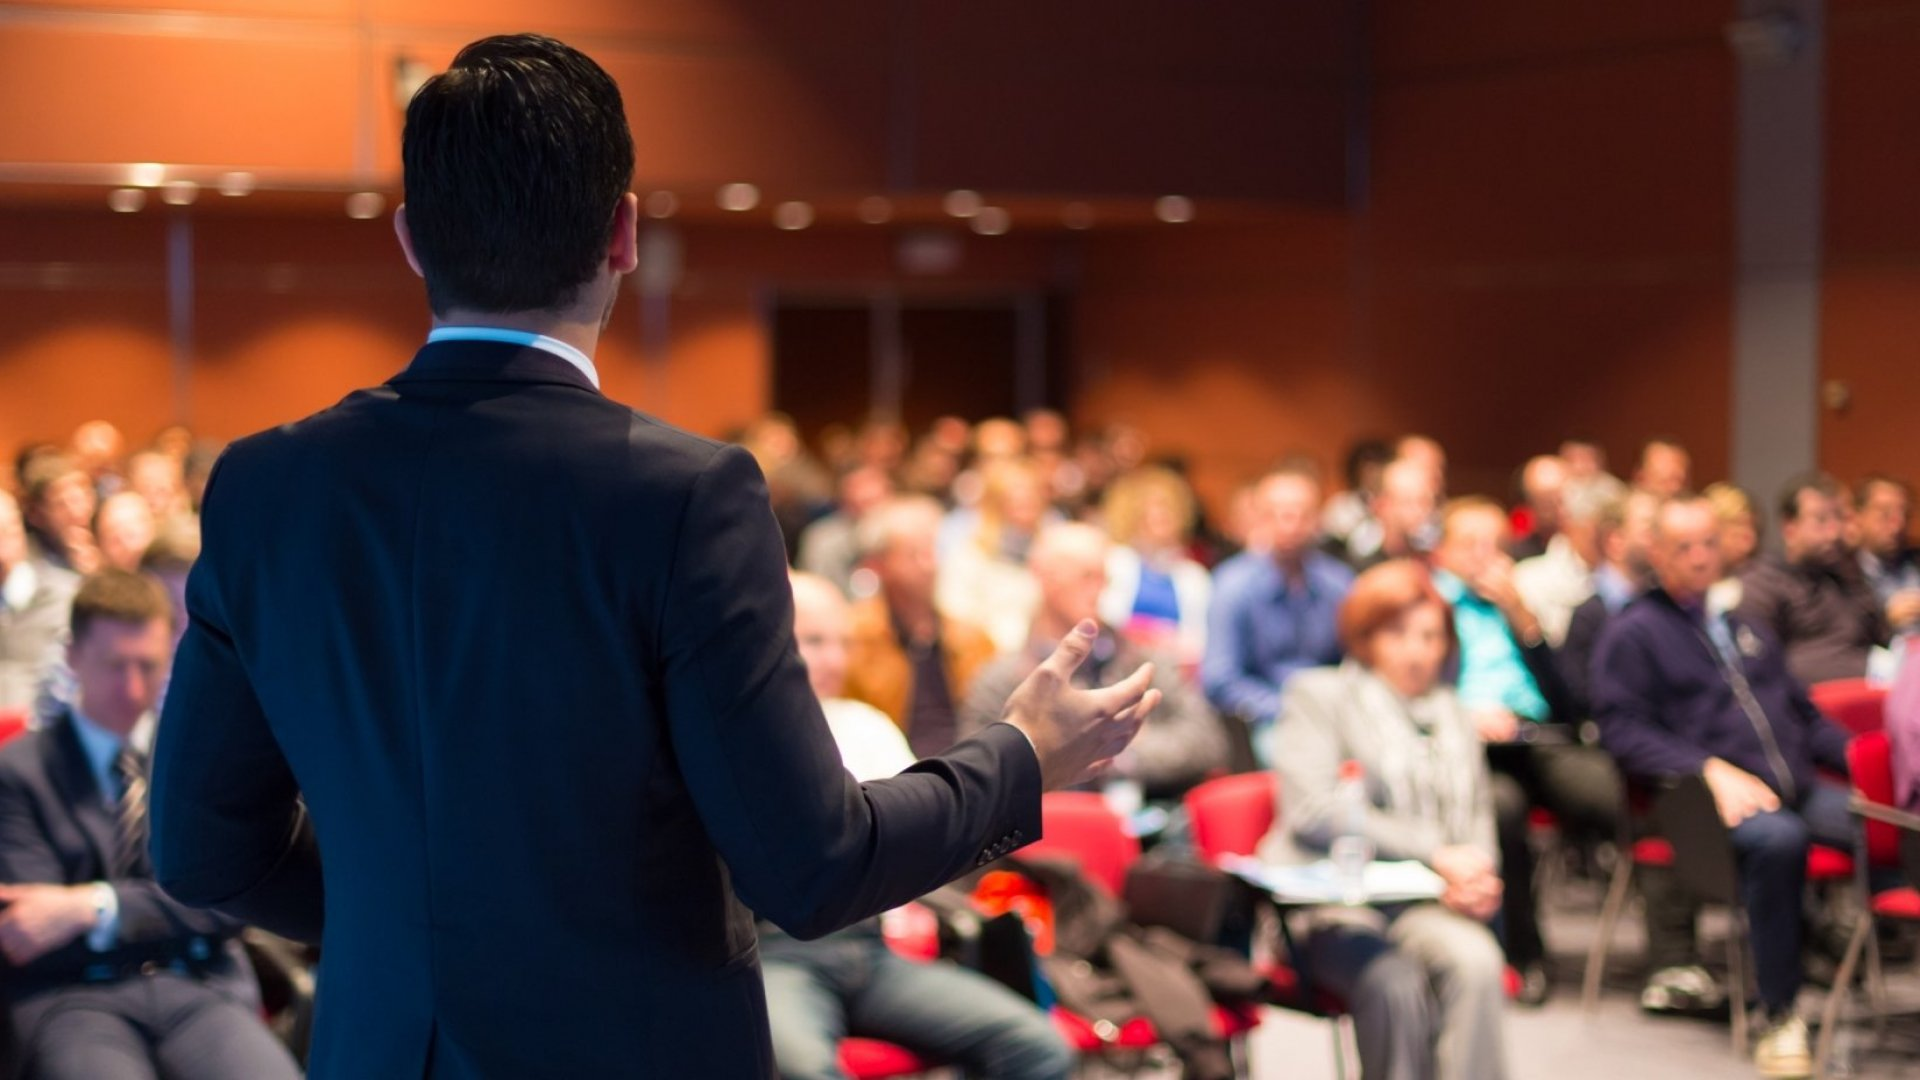 How Professional Speakers Convey Confidence on Stage  Inc.com